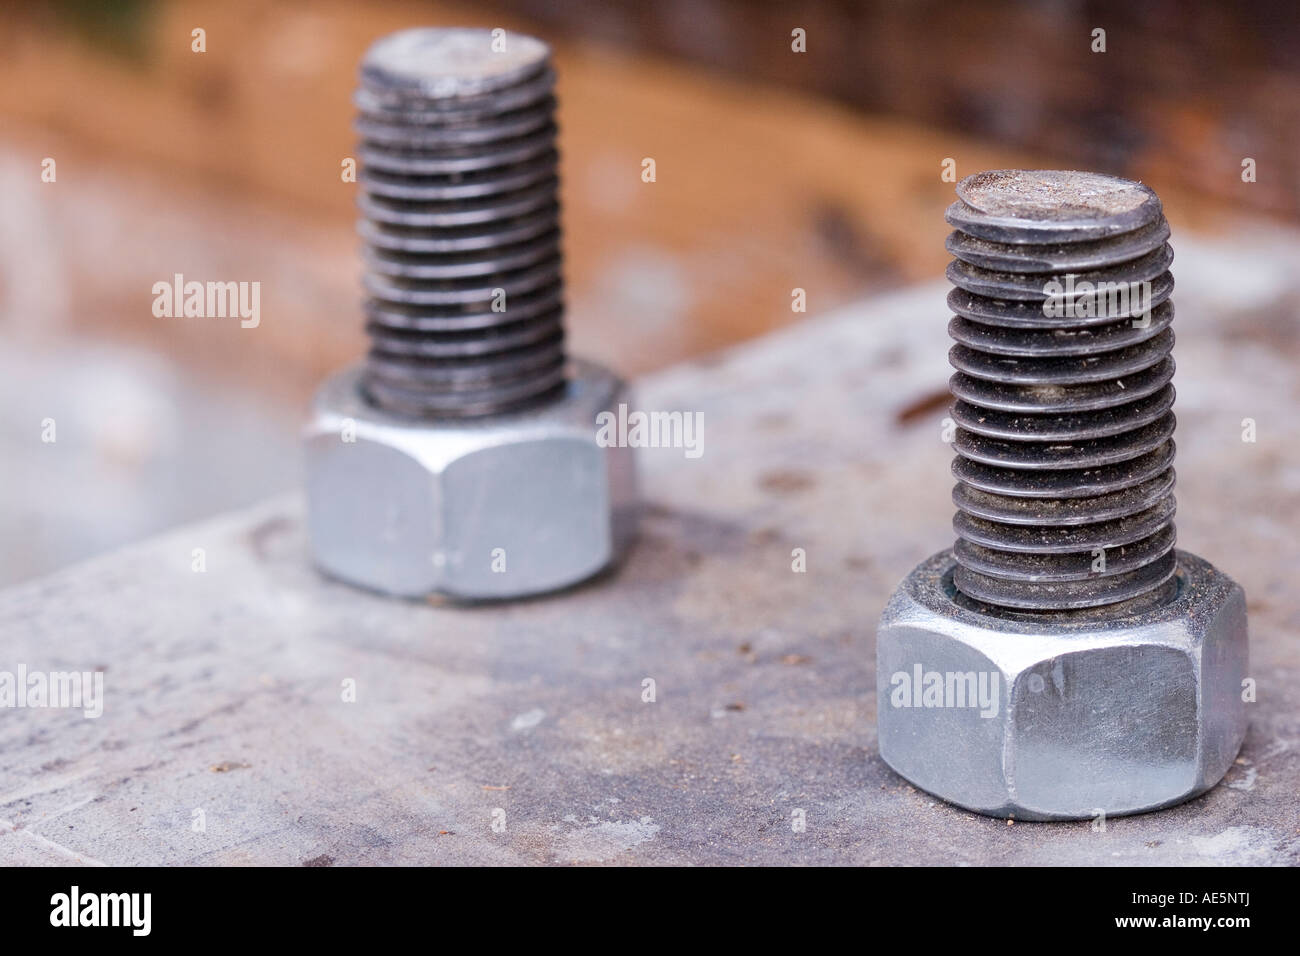 Two galvanized steel bolts with nuts secured to rusty metal plate - Stock Image